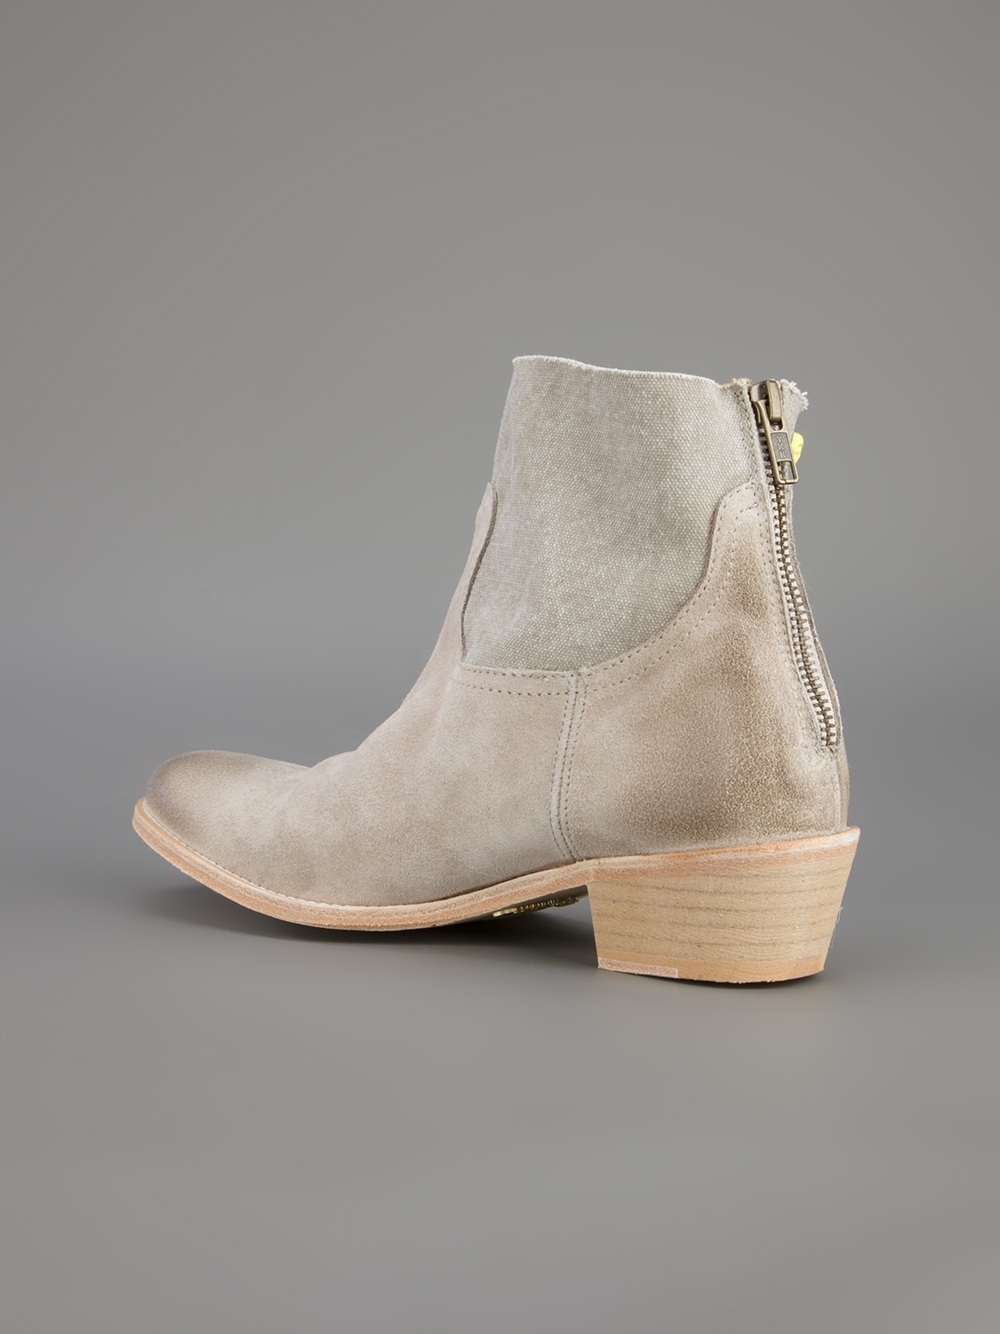 Zadig & Voltaire Beige Leather Boots MbbFyzYQ